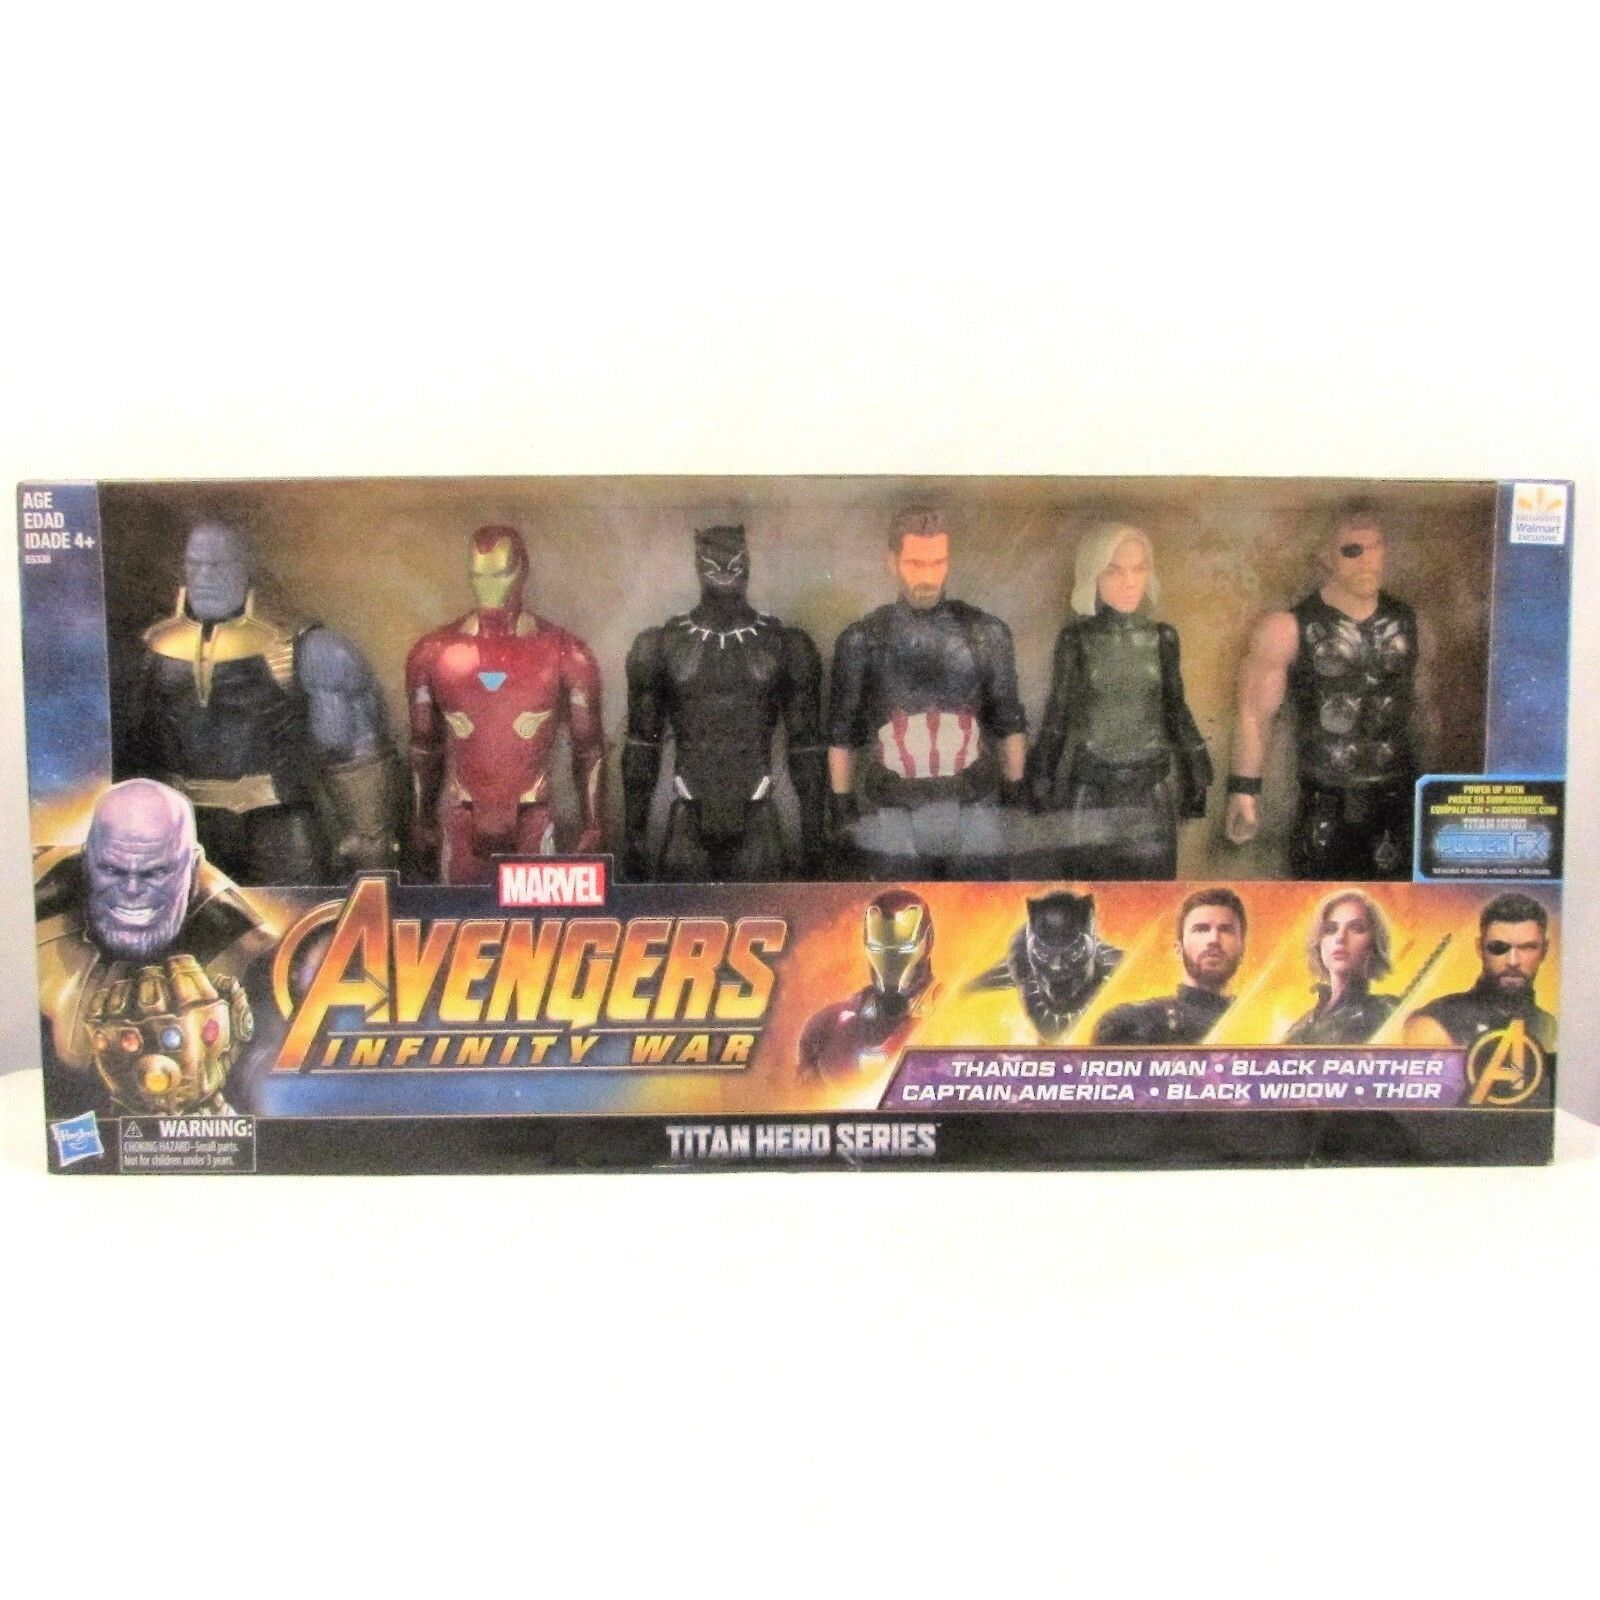 Marvel Avengers Infinity War Titan Hero Figures 6-Pack Walmart Exclusive NEW NIB